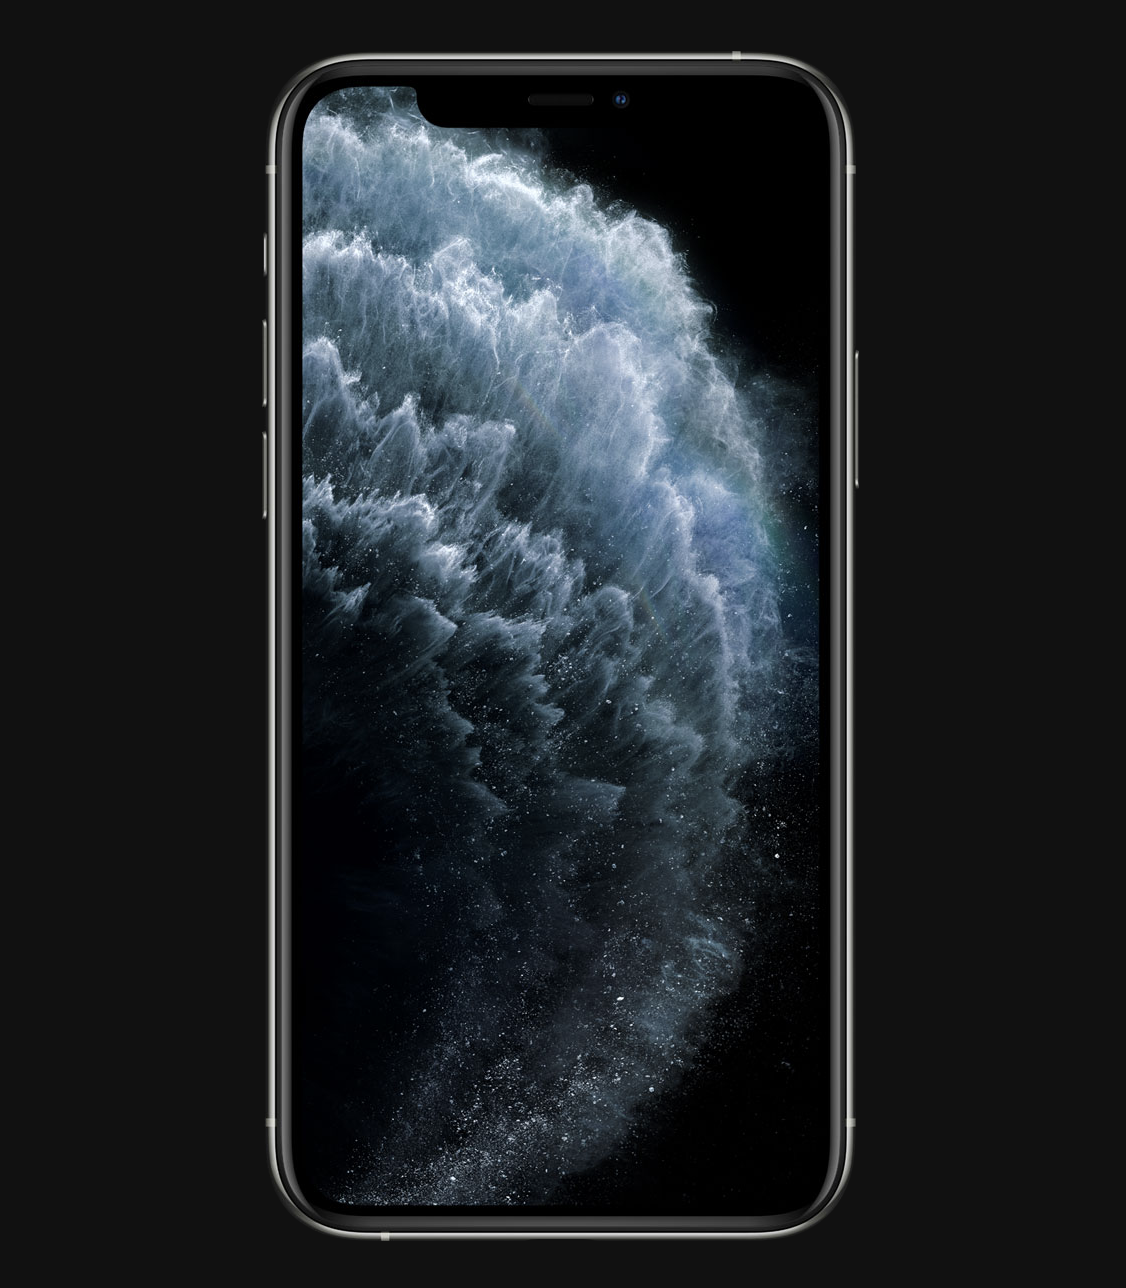 iPhone 11 Pro Super Retina XDR display